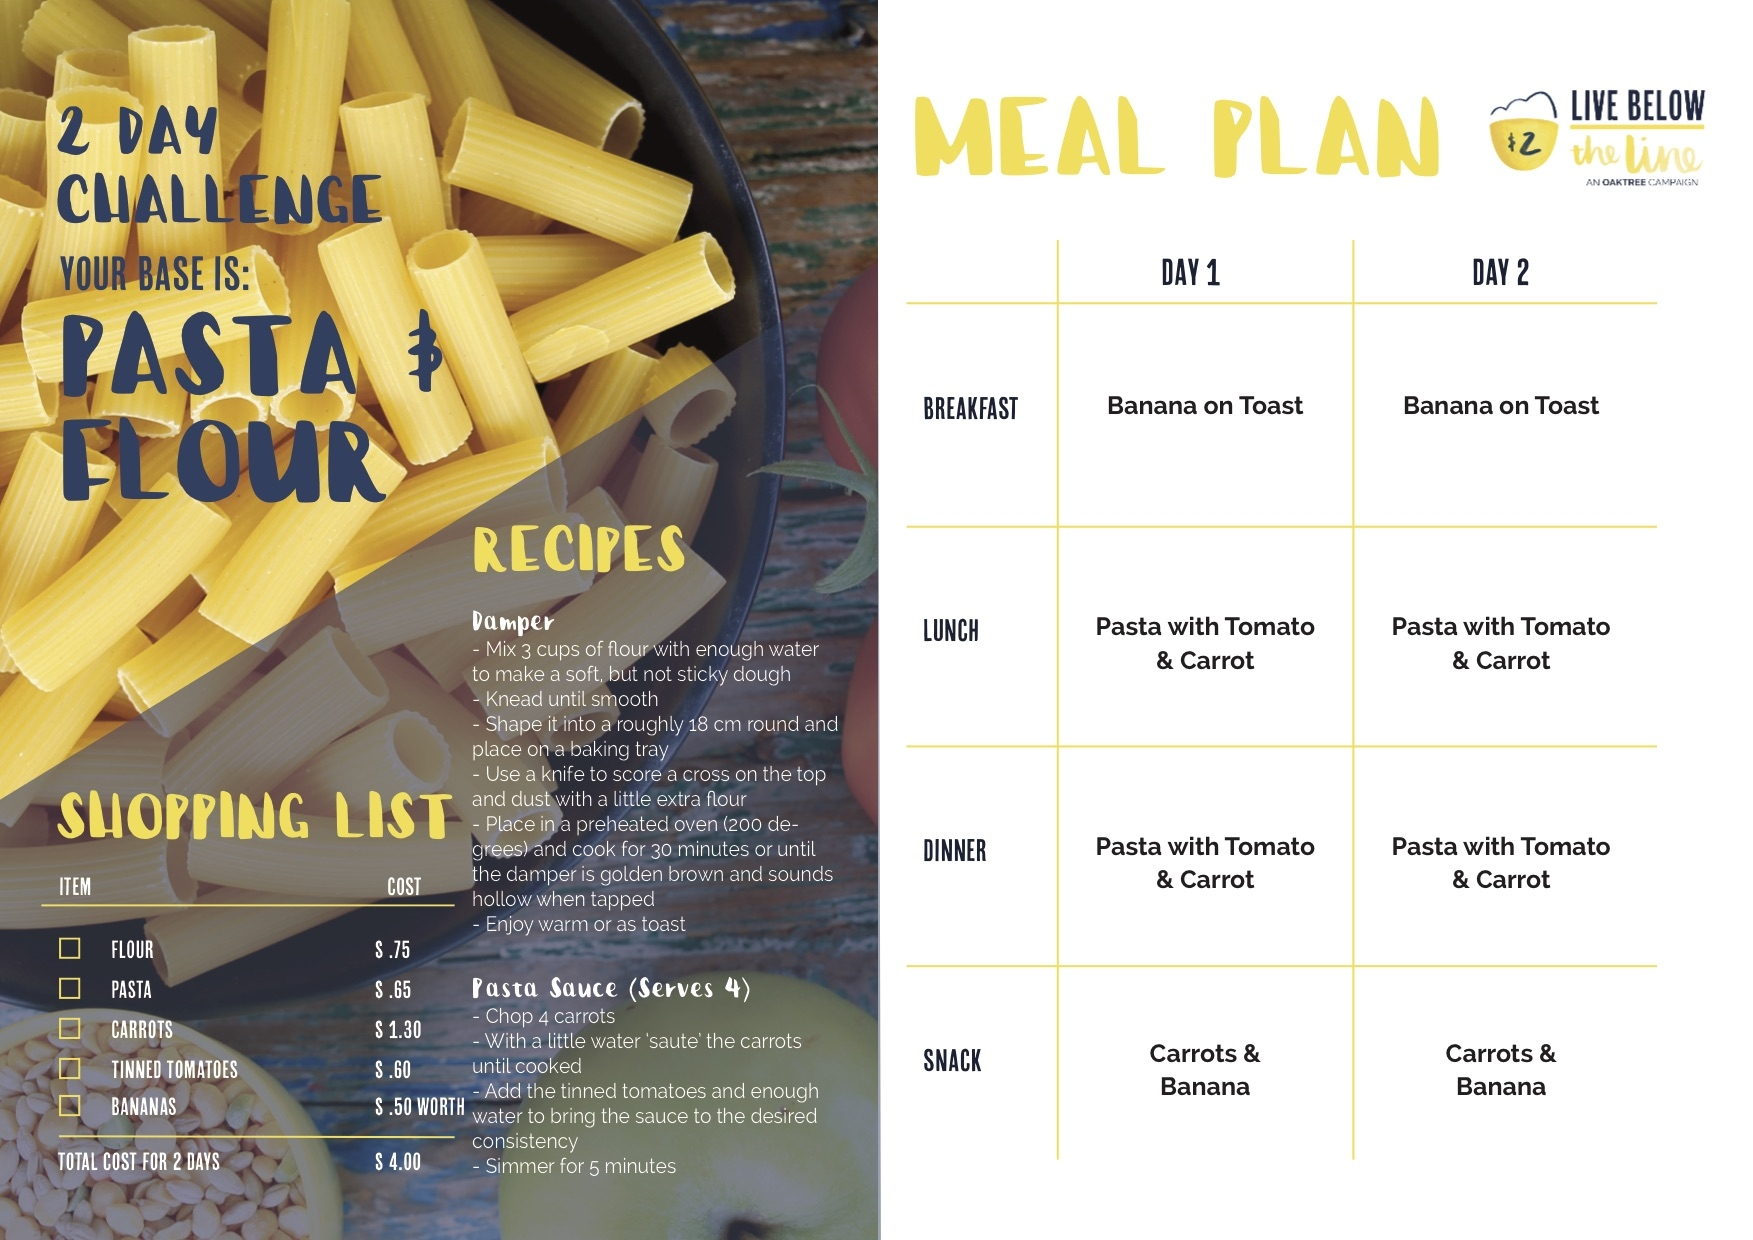 Downloadable 2 Day Challenge Meal Plan + Shopping List : Pasta